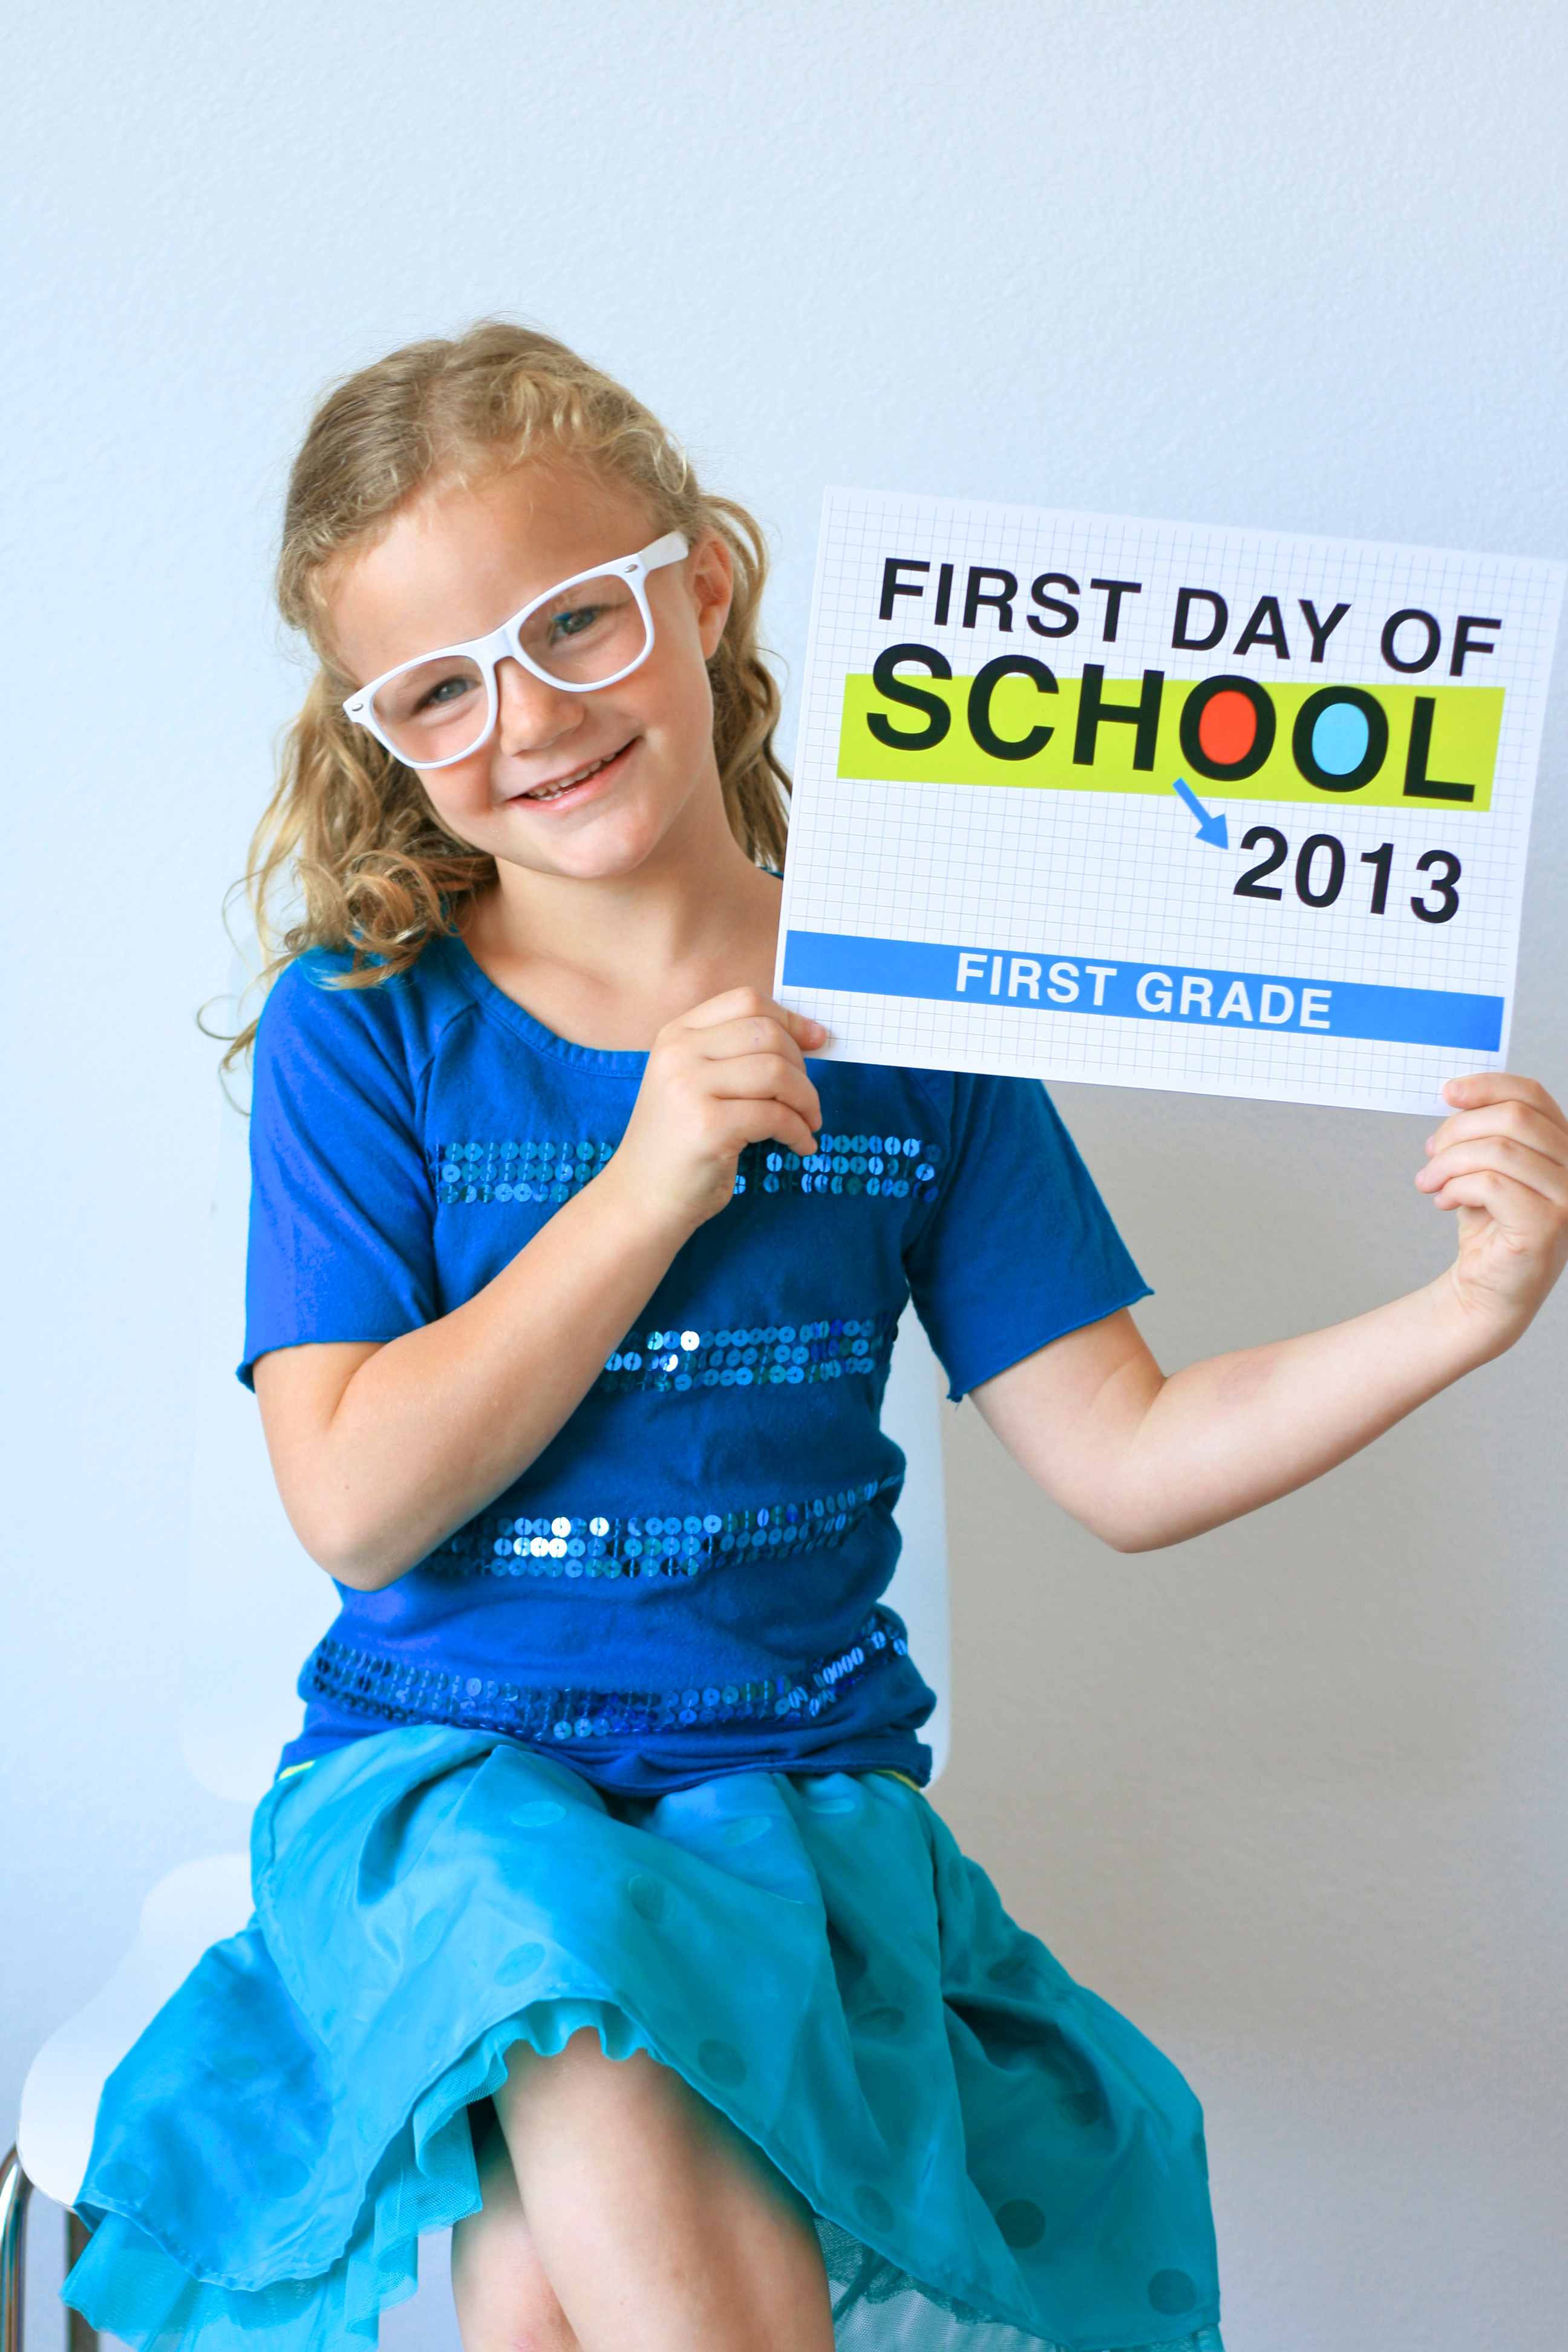 First-Day-School-Photo-Signs-1.jpg